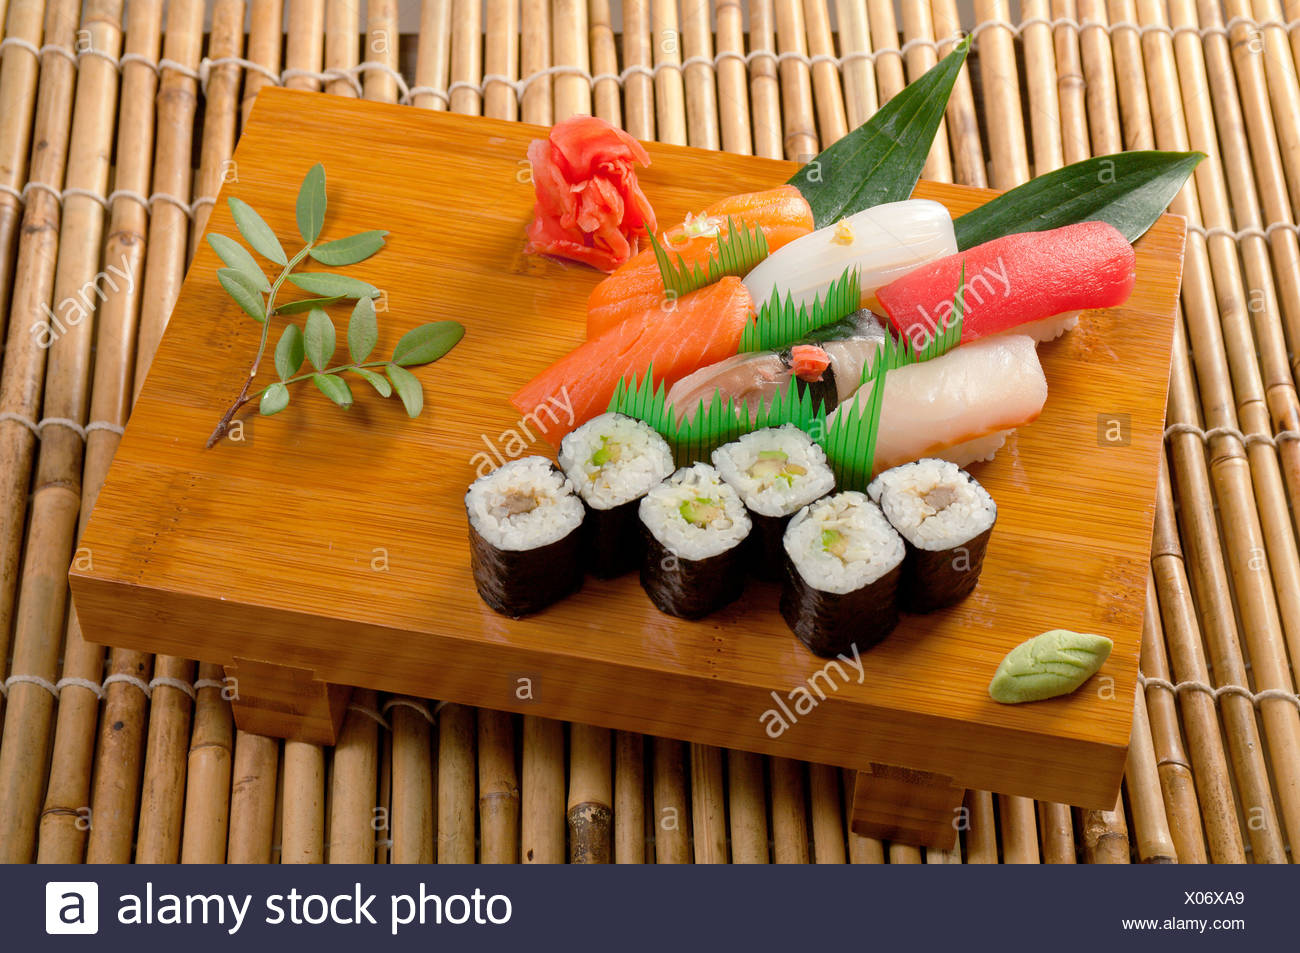 Japanese sushi  Roll made of Smoked fish - Stock Image